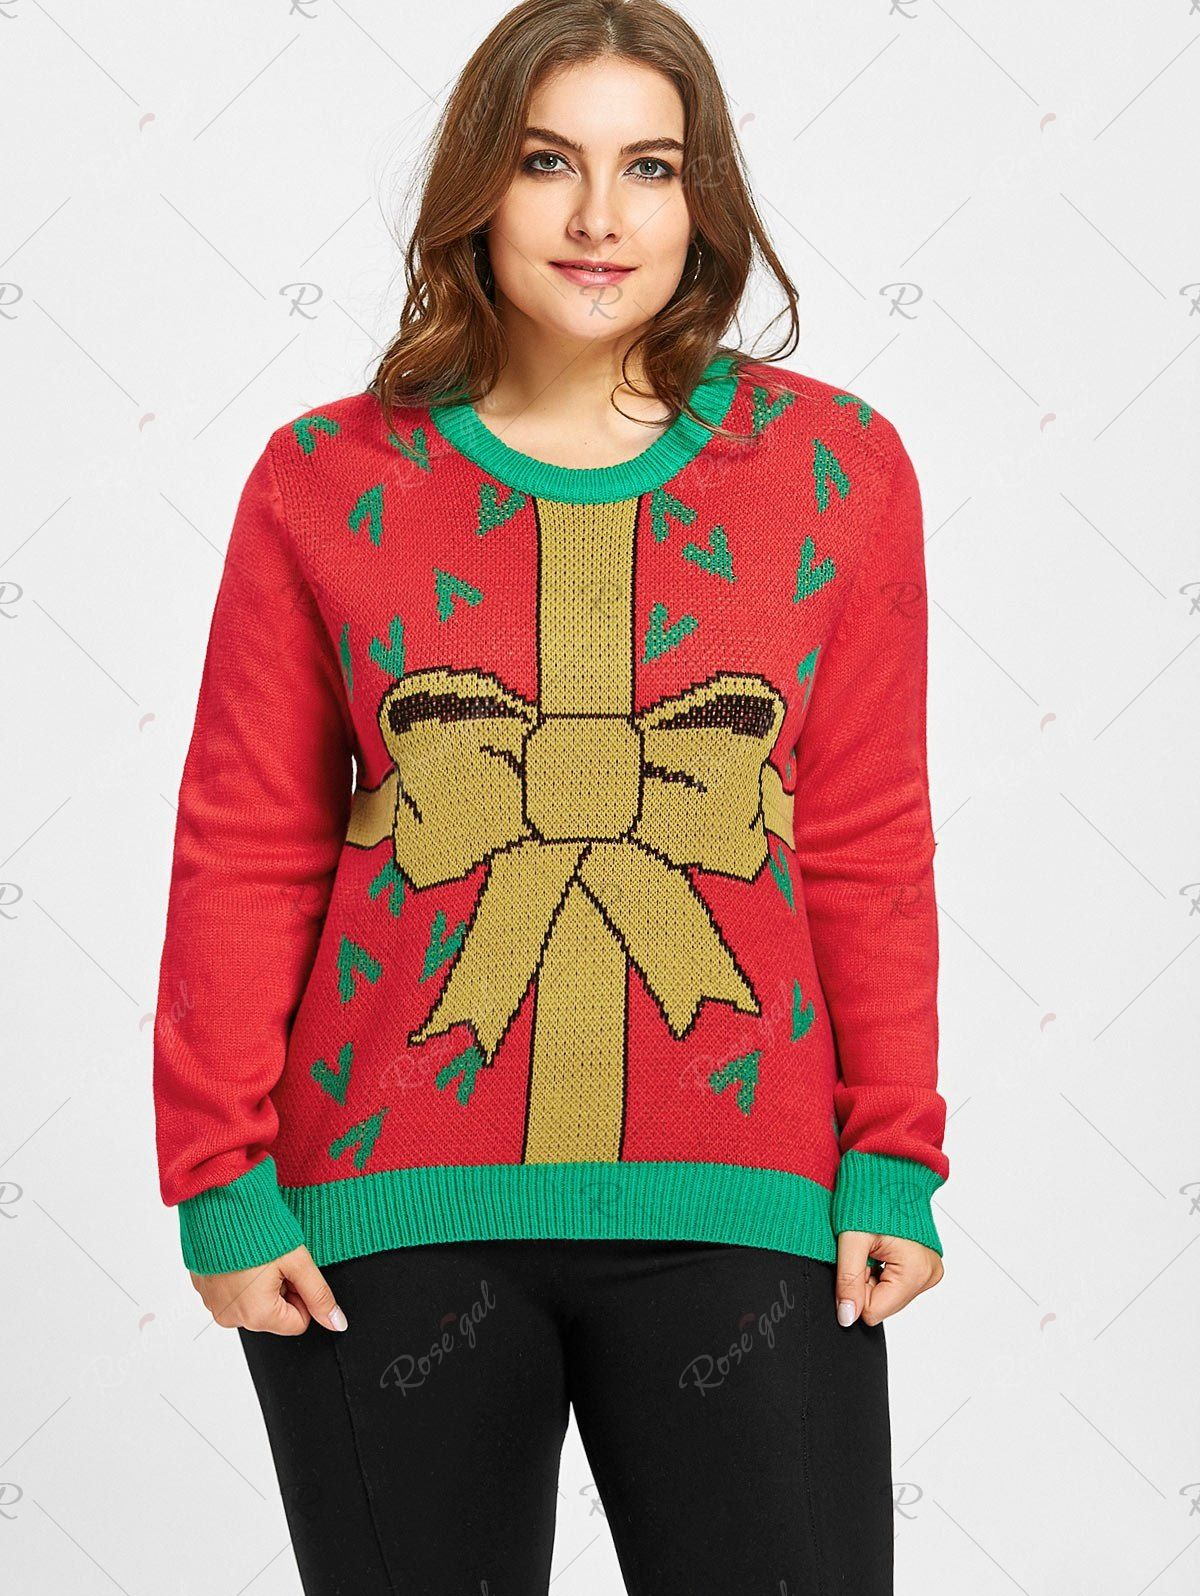 Plus Size Christmas Gift Bowknot Jacquard Sweater in 2020